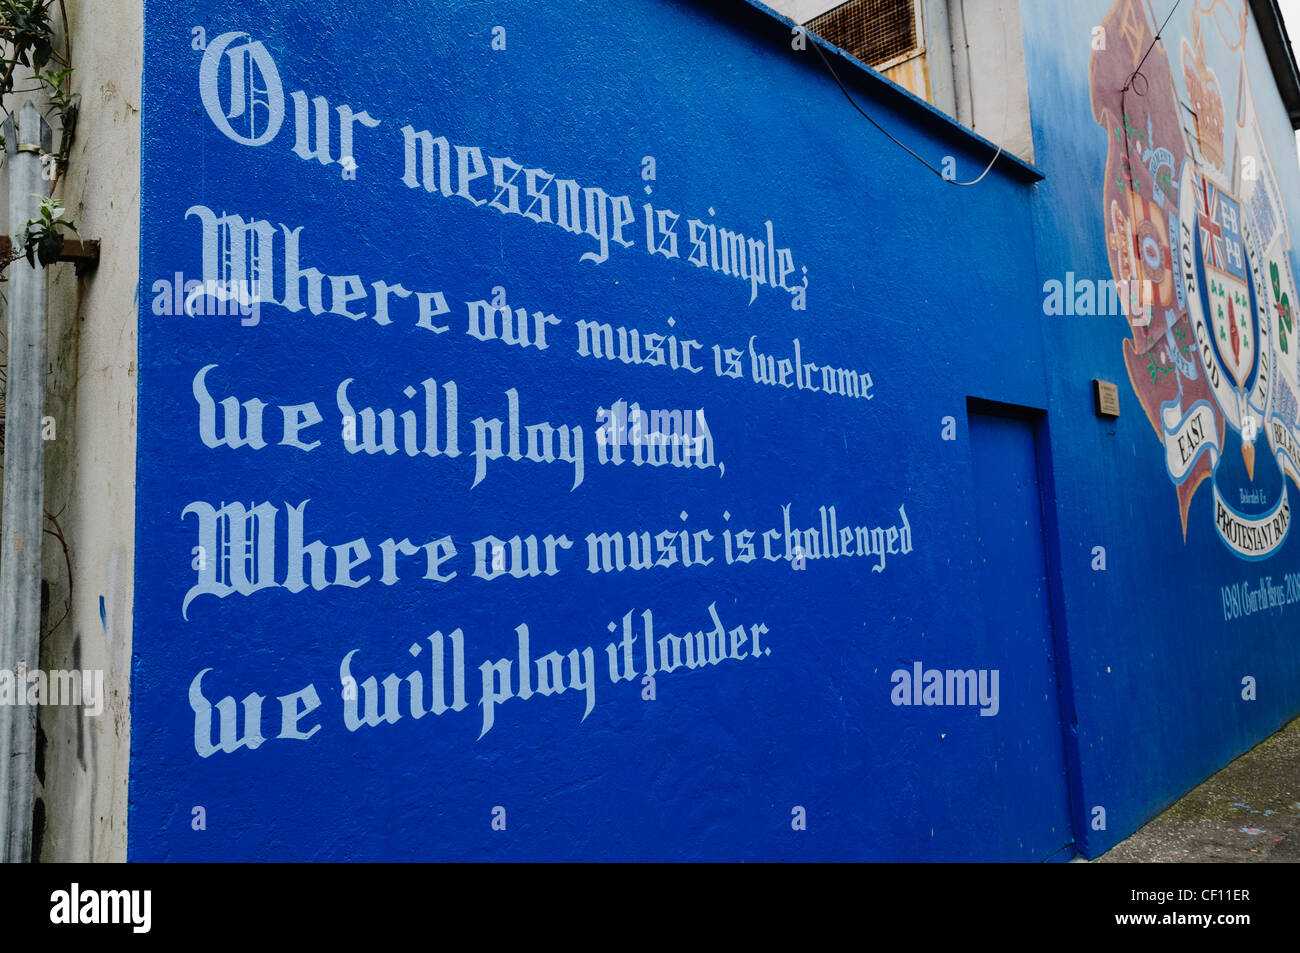 Message on East Belfast Mural 'Where our music is welcome we will play it loud. Where it is challenged we will - Stock Image